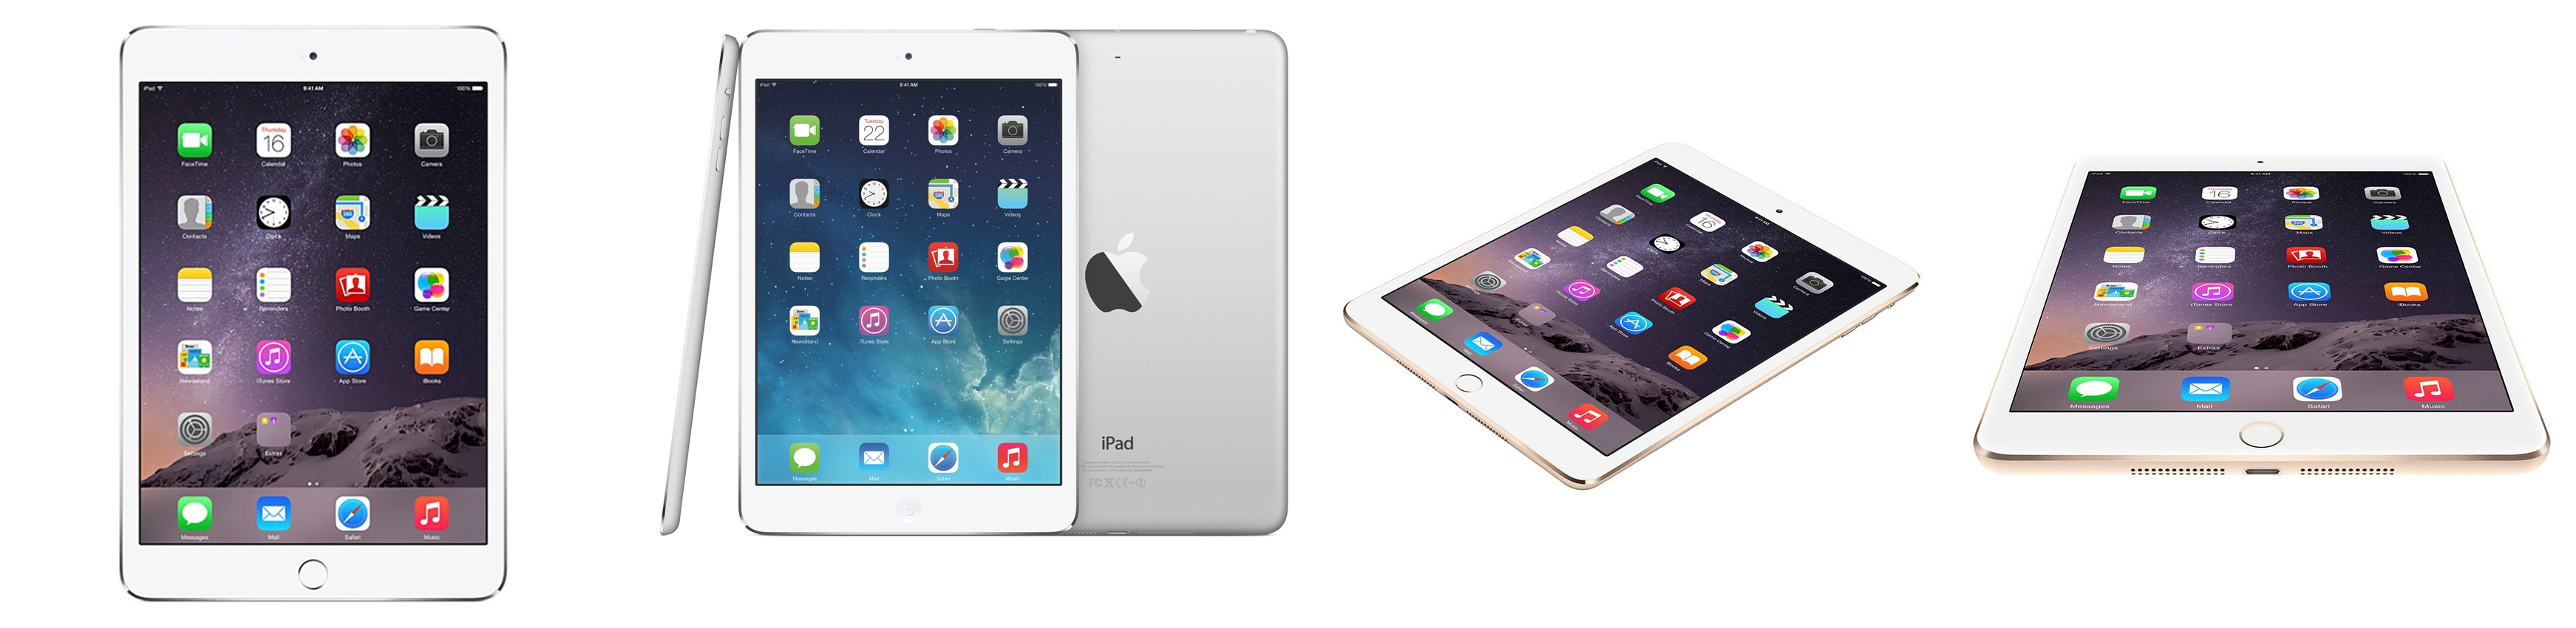 apple-ipad-air-2-wi-fi-cellular-16gb-silver-0593-983335-1-horz